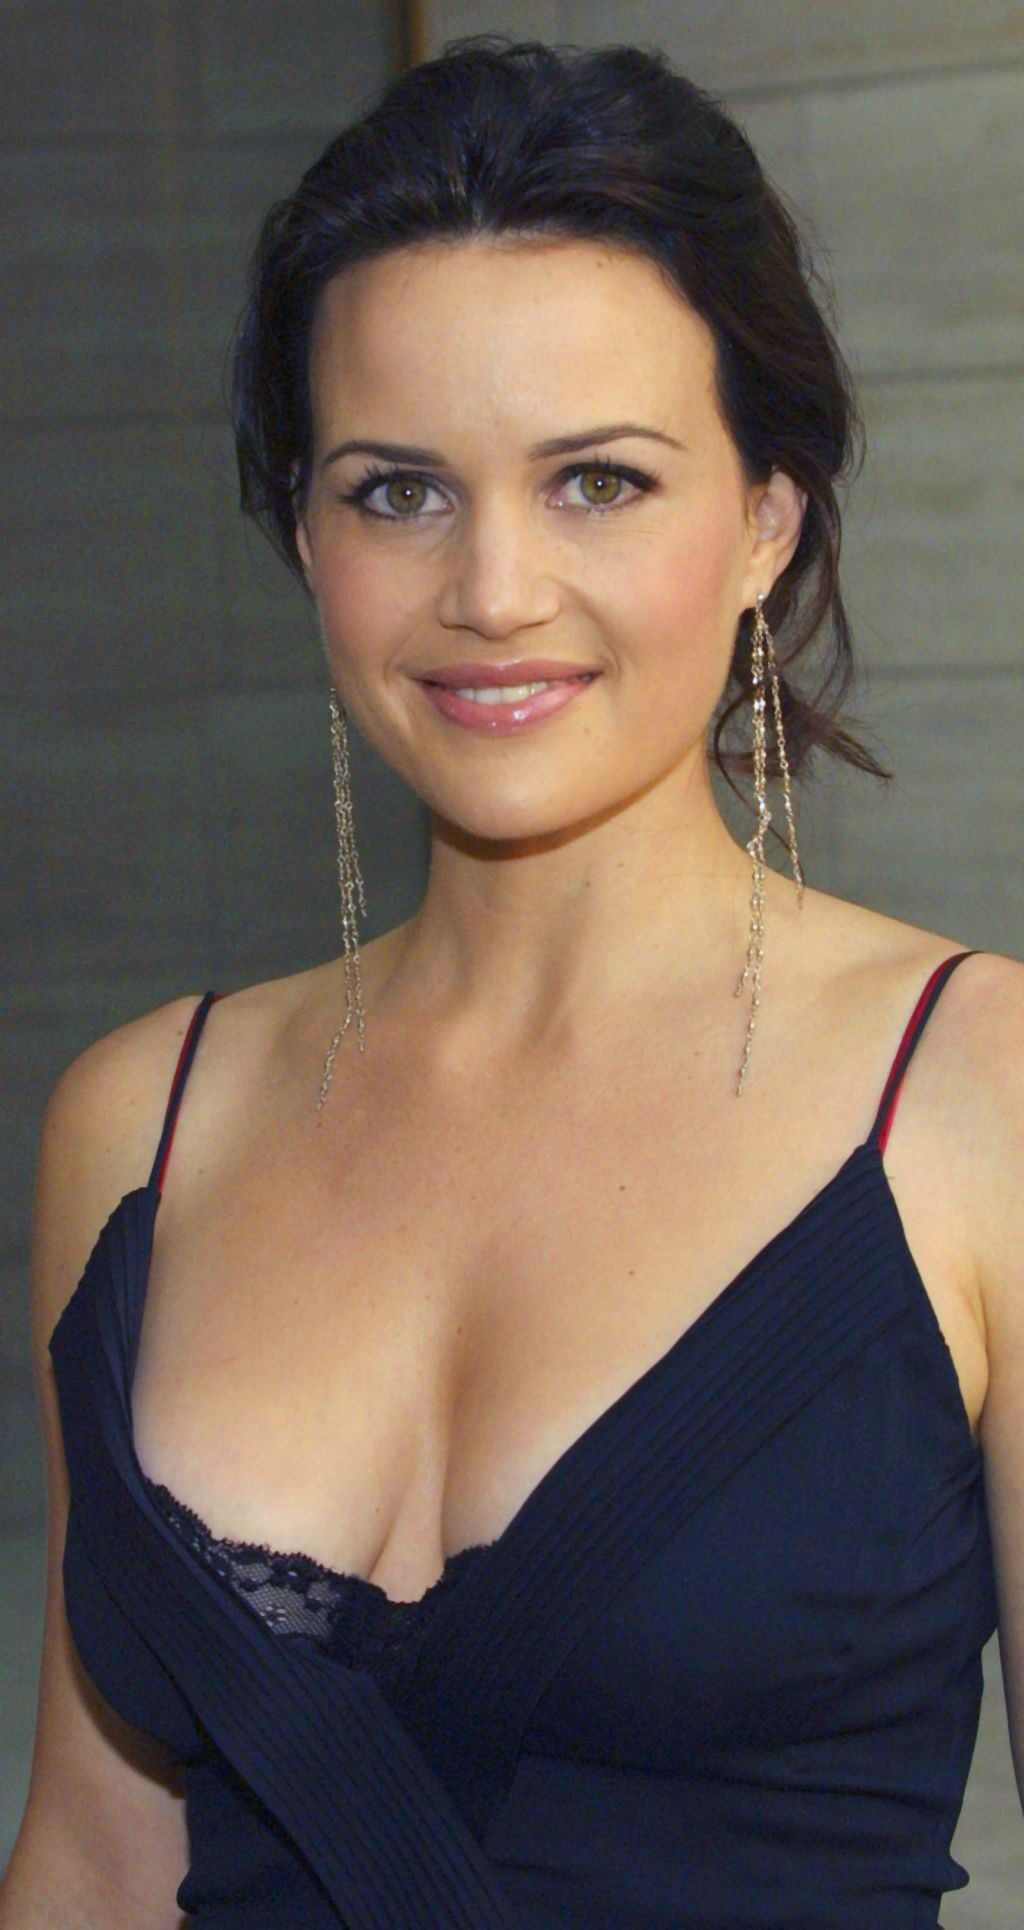 Celebrites Carla Gugino nude (79 photos), Twitter